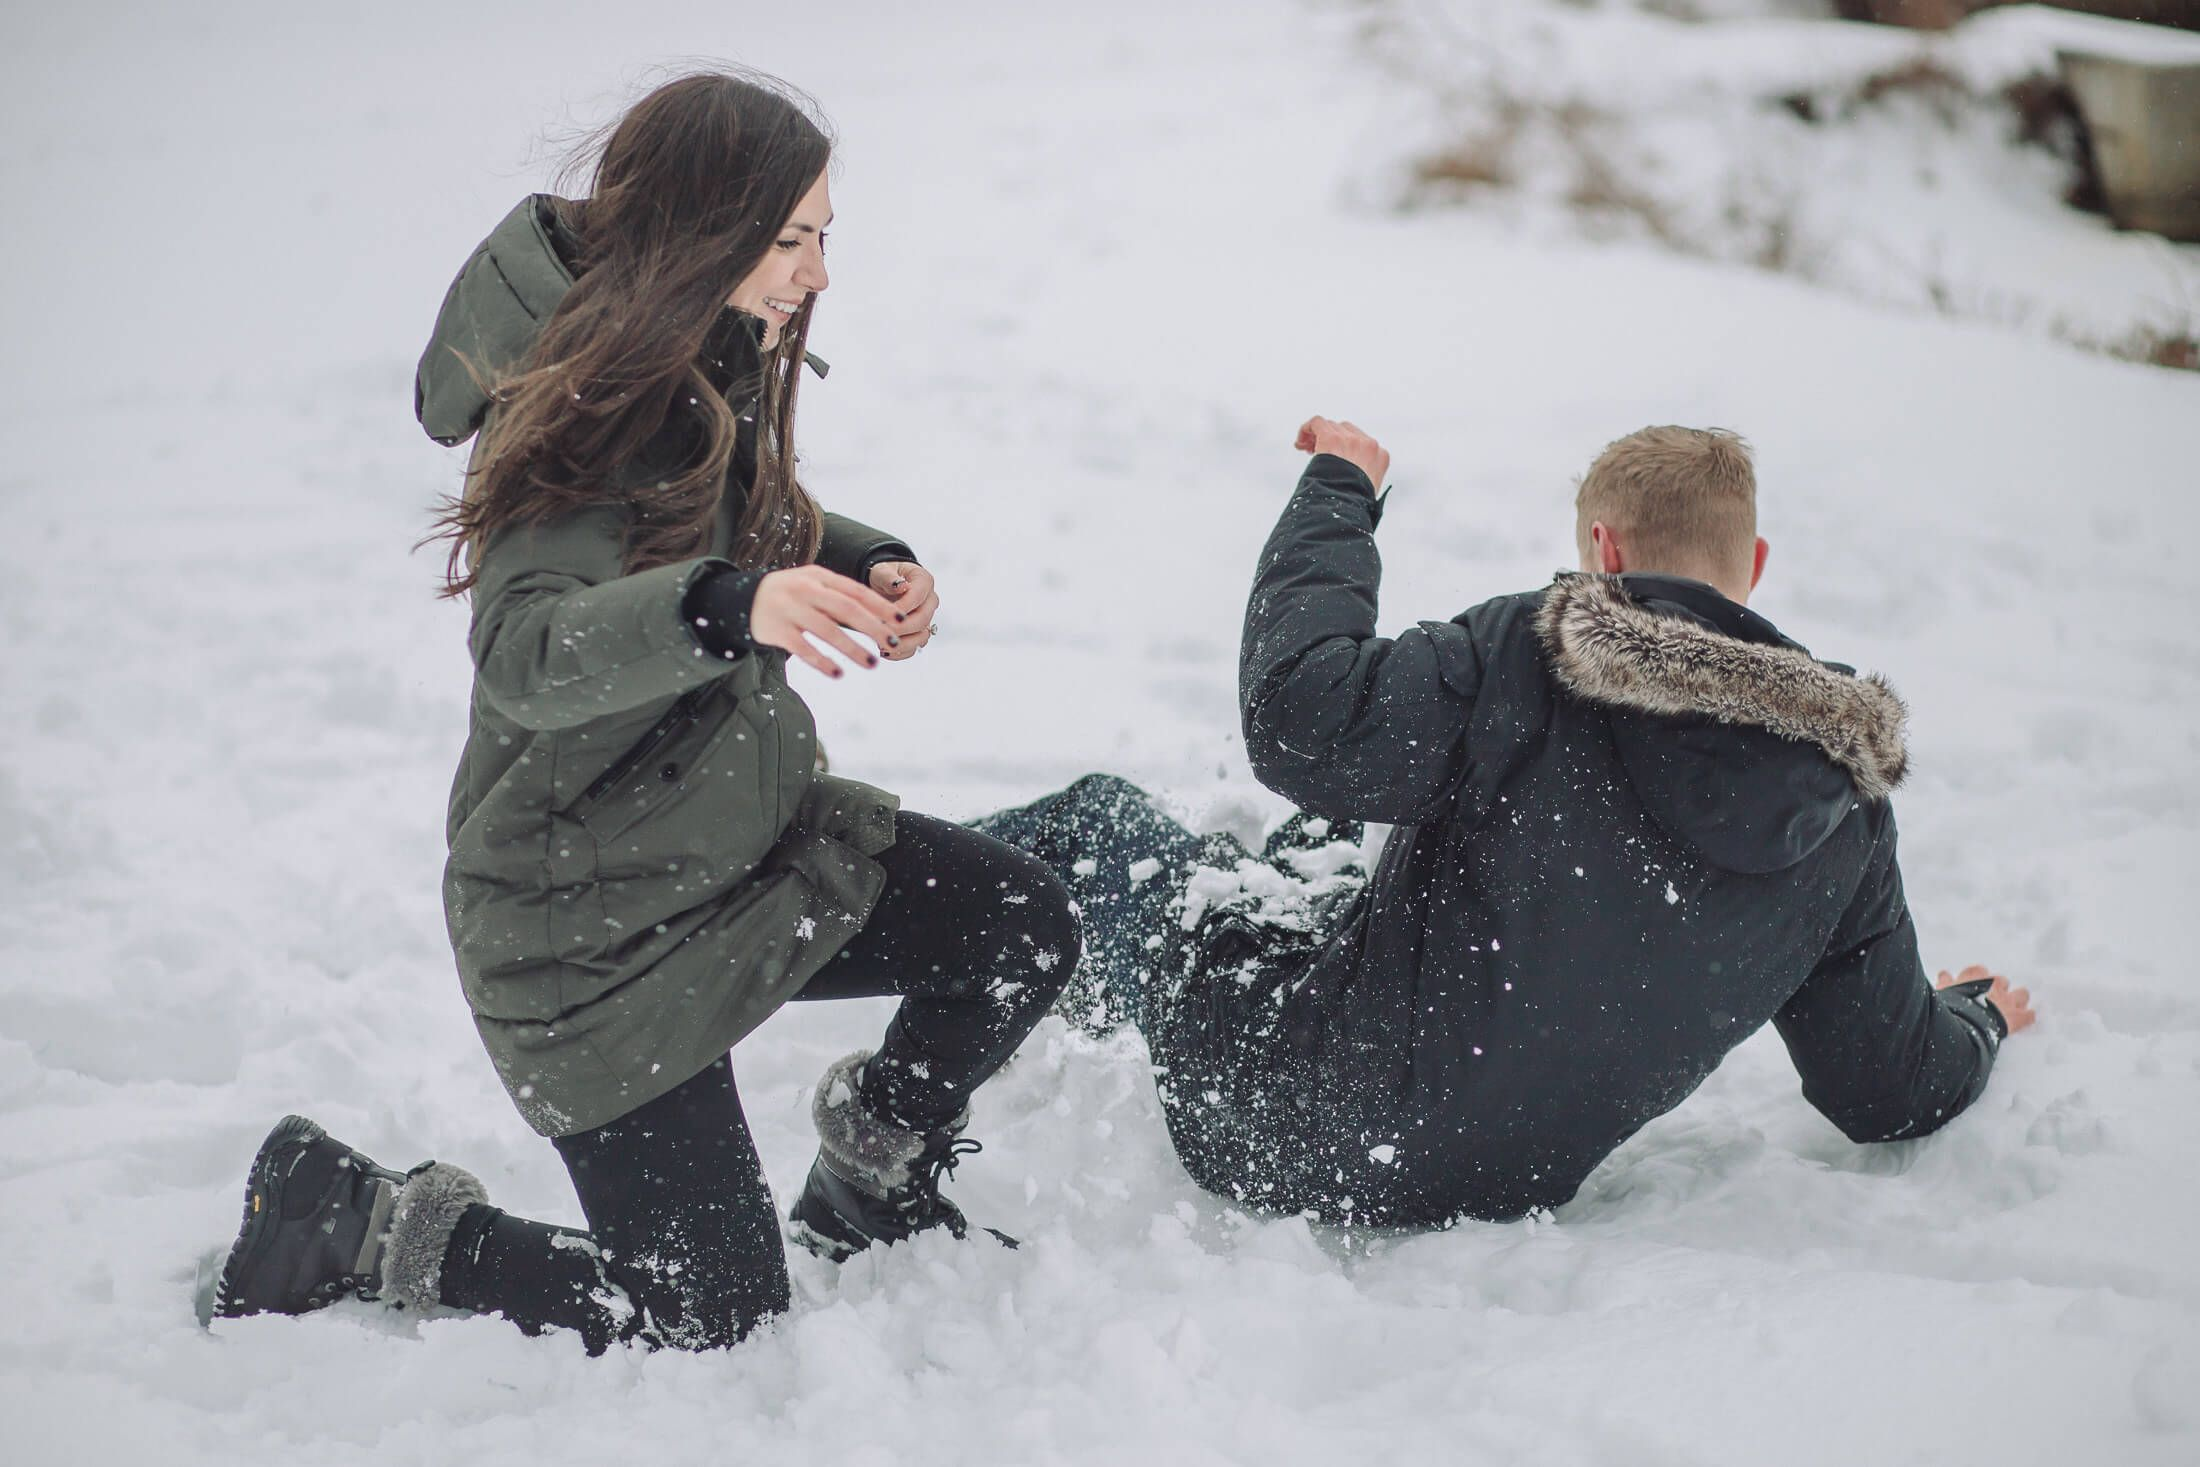 Snow ball fight winter engagement session at Cooper River Park in Cherry Hill, NJ.